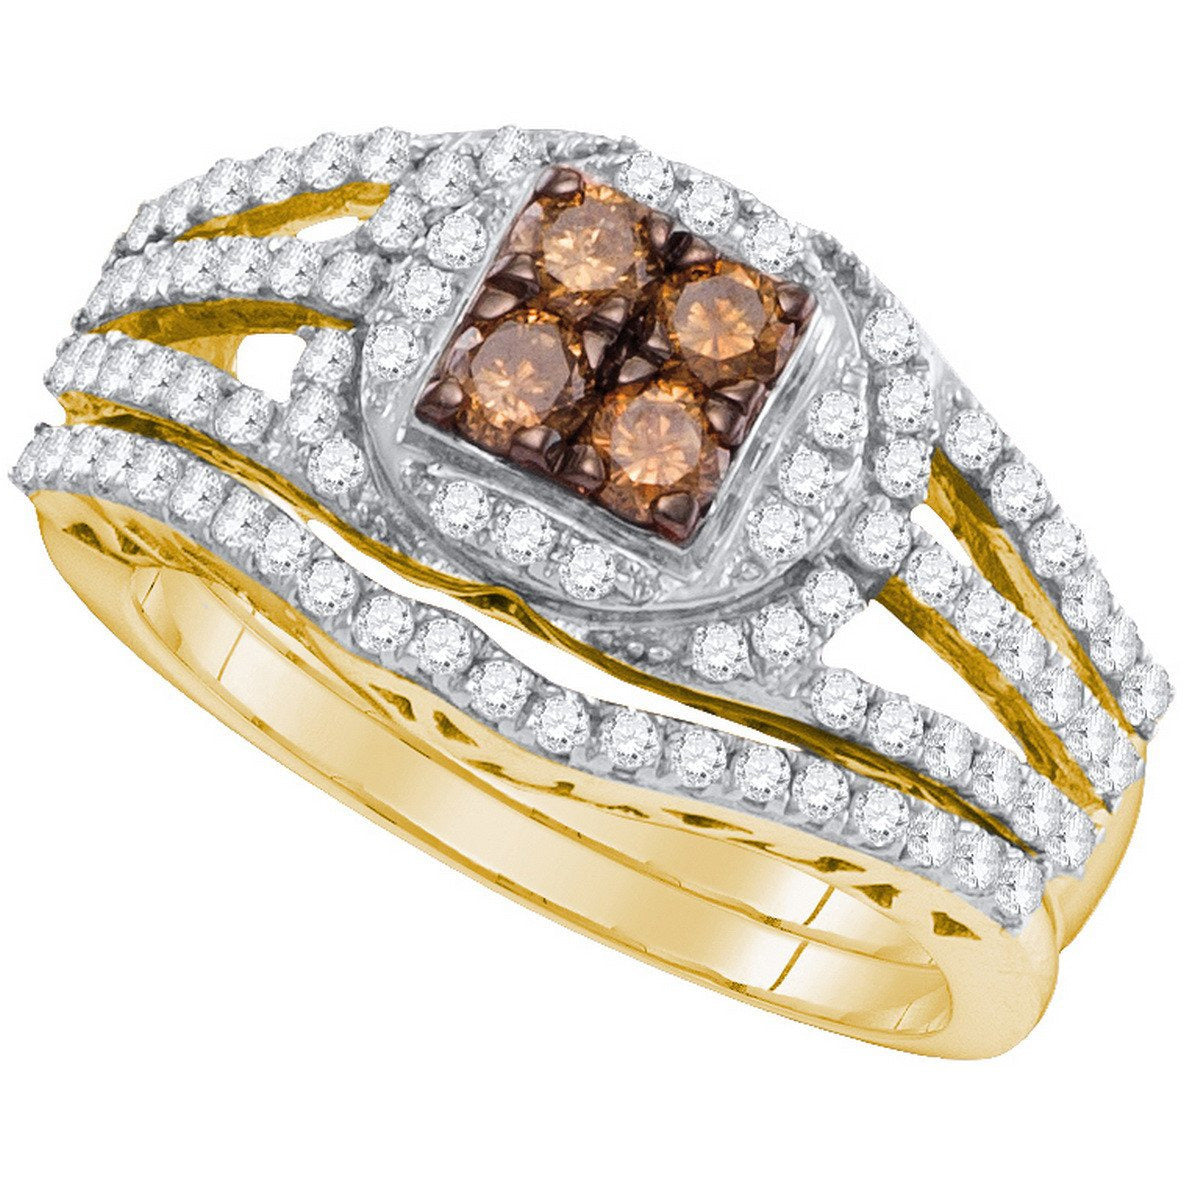 10kt Yellow Gold Womens Round Cognac-brown Colored Diamond Bridal Wedding Engagement Ring Band Set 1 Ctw 98208 - shirin-diamonds